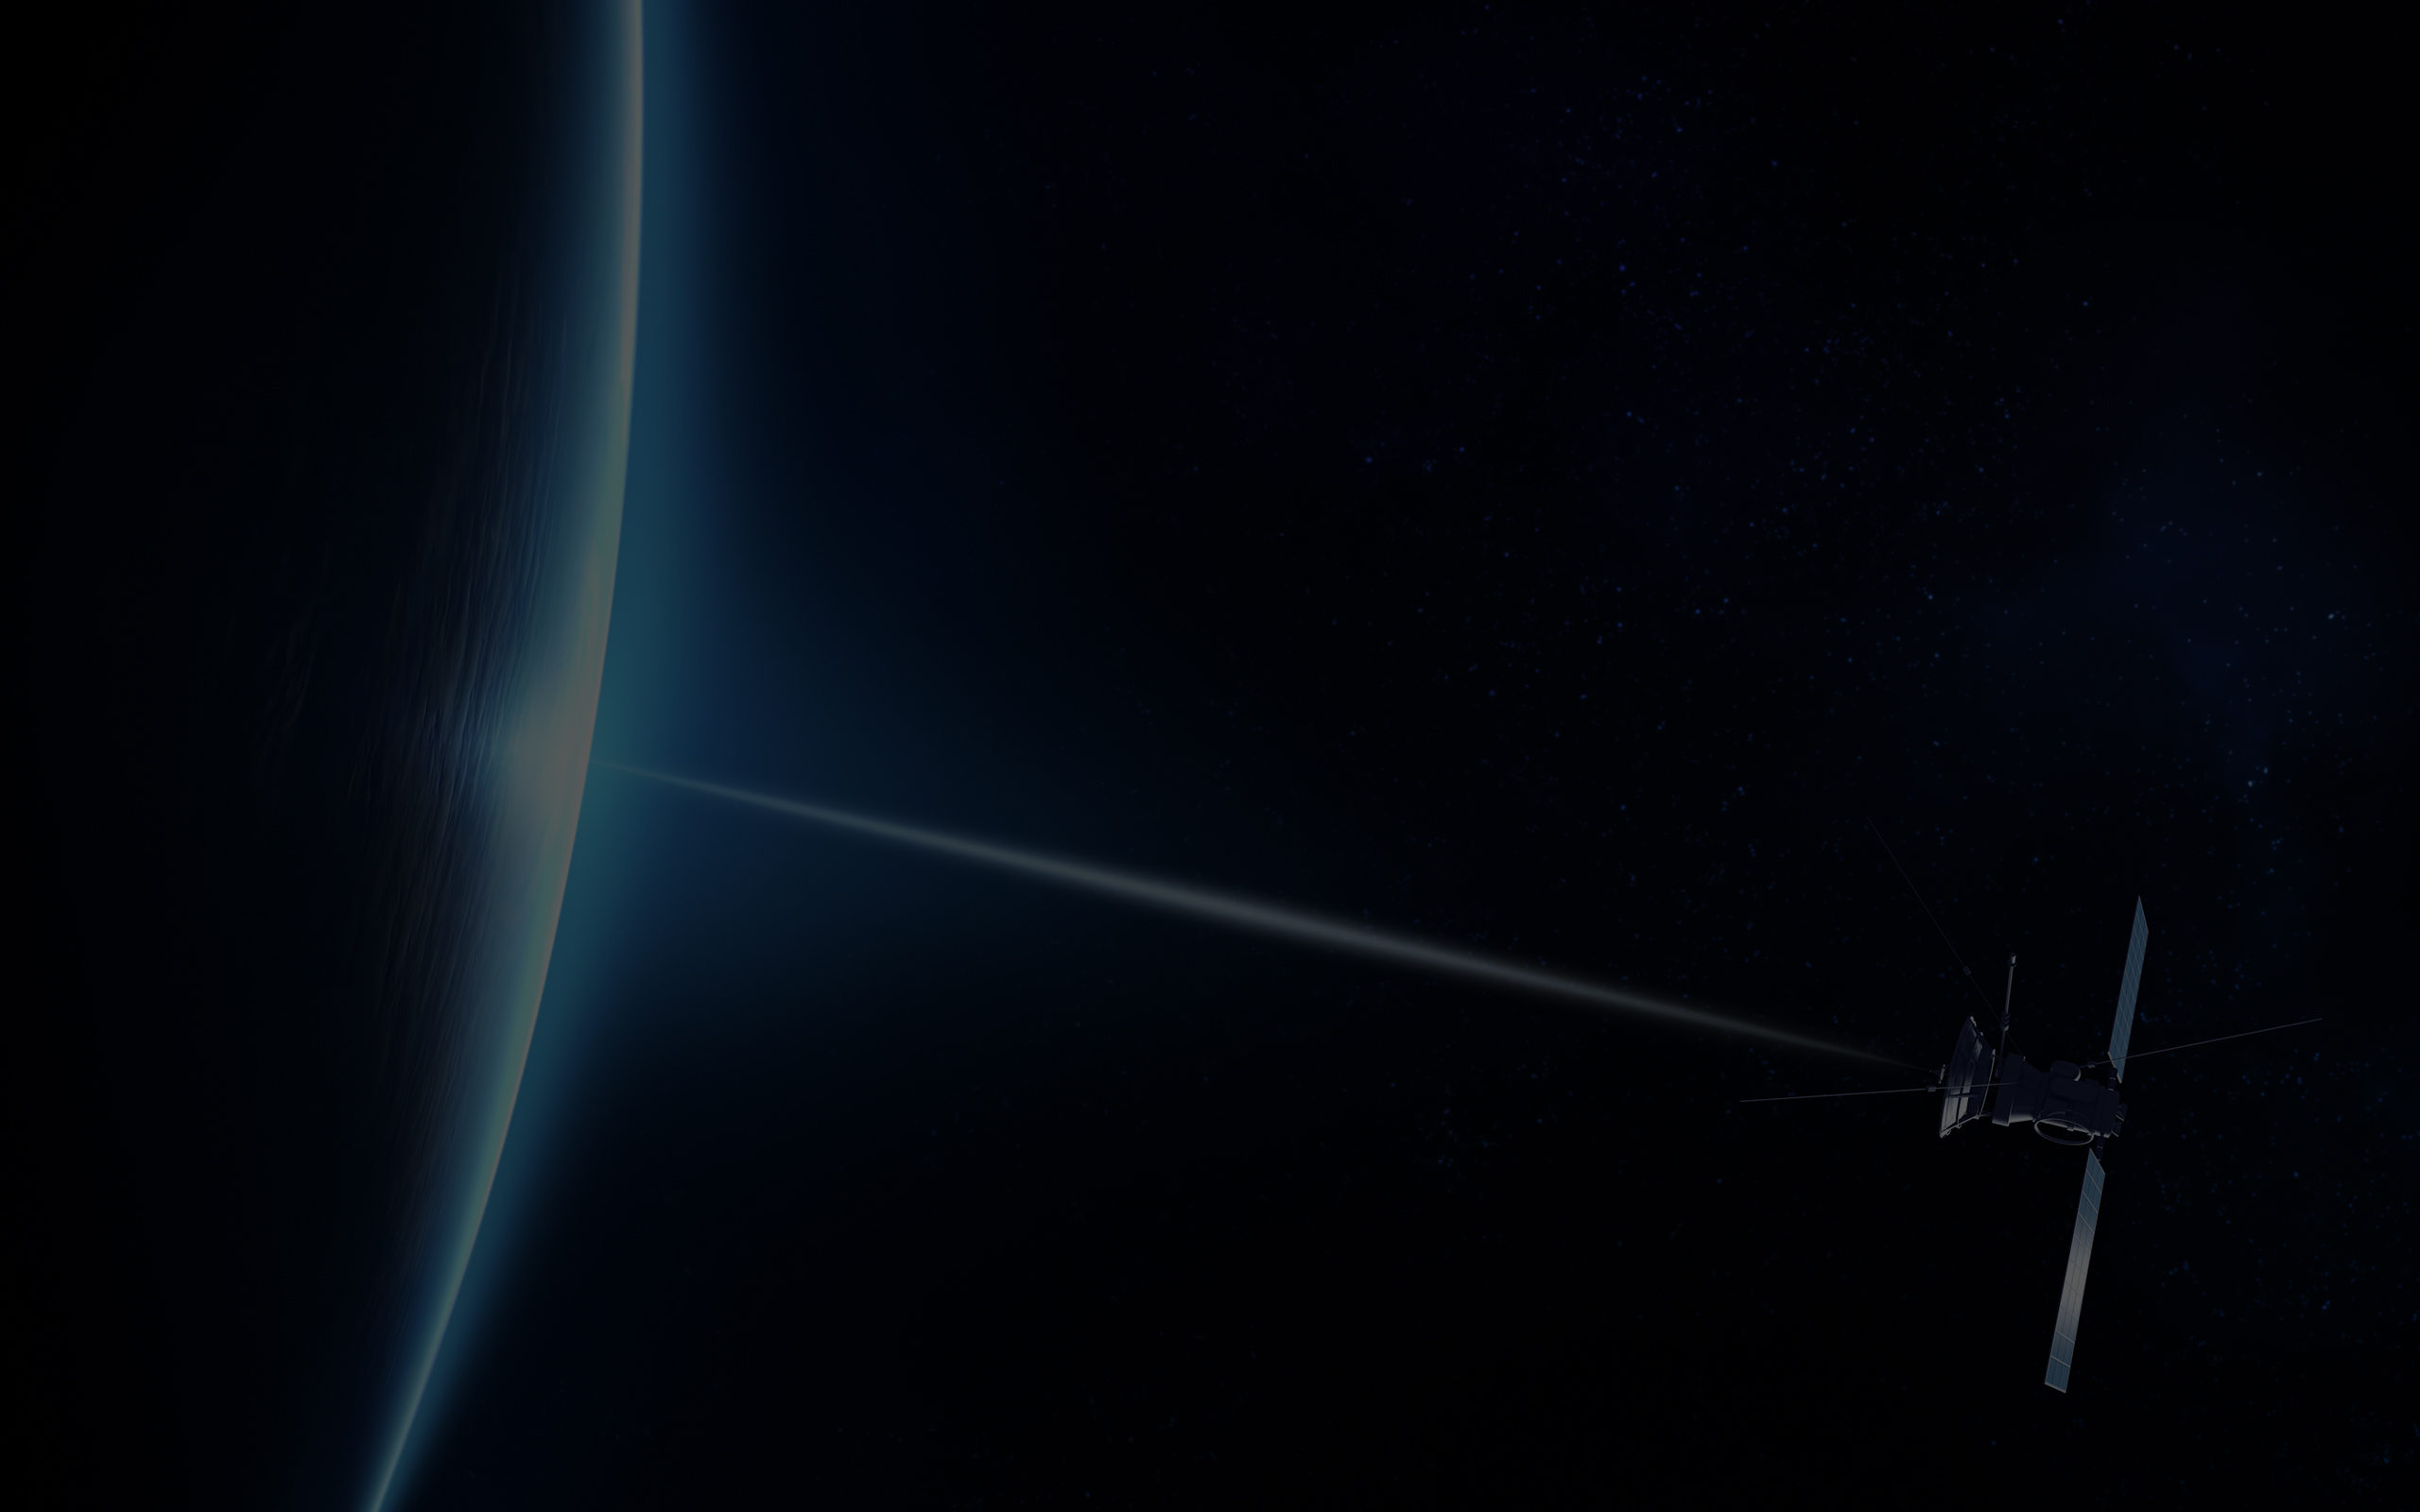 Background image slider - Apollo SatCom